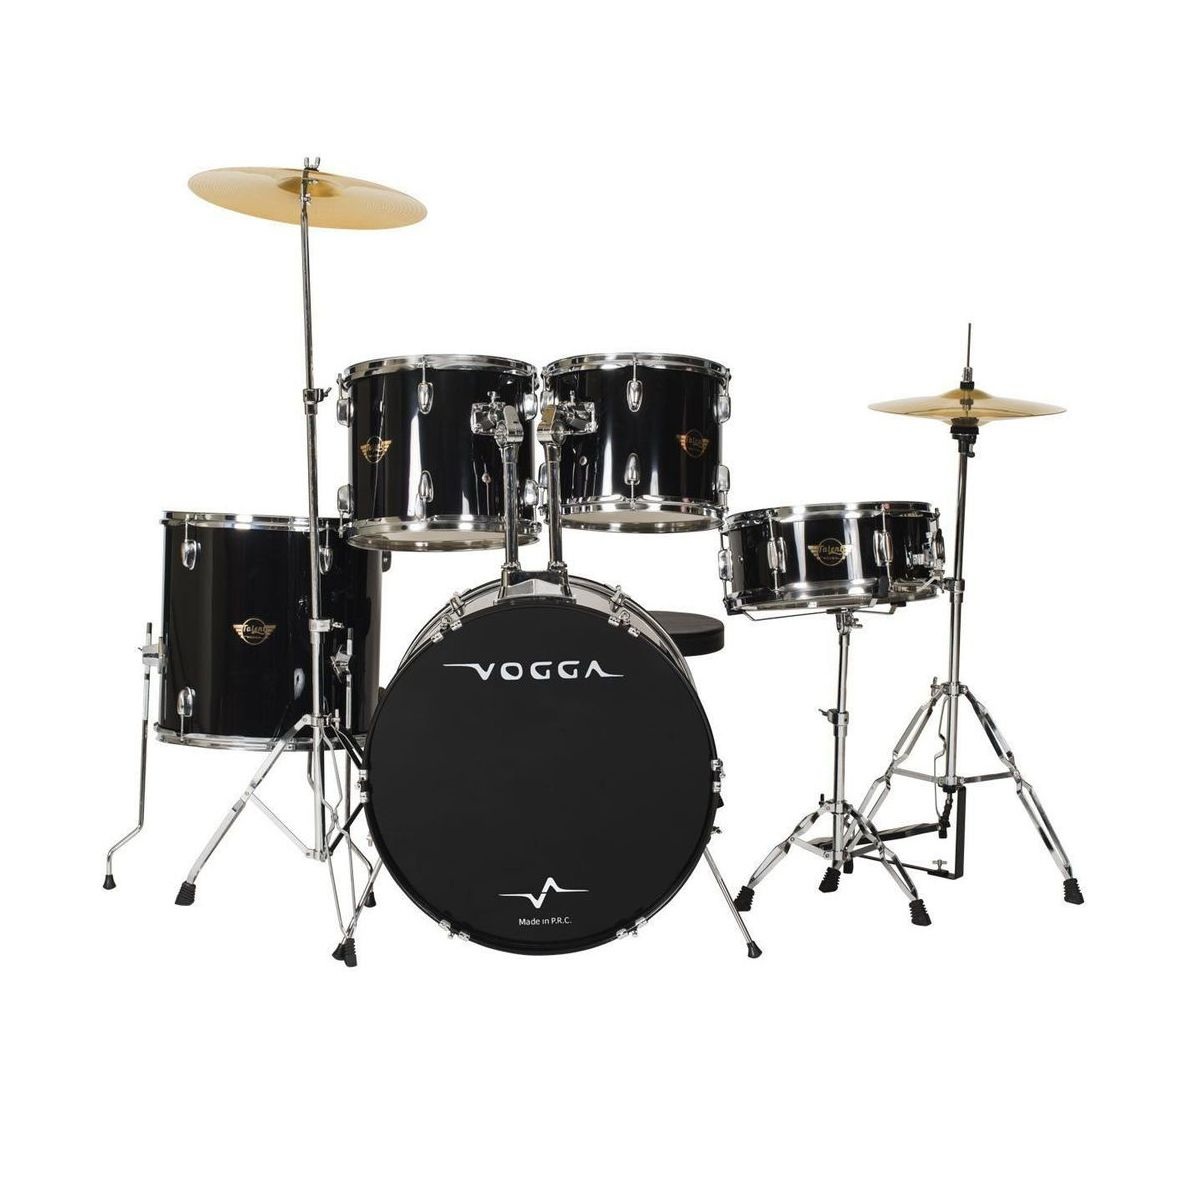 Bateria Acústica Vogga VPD922 Talent 22 Black